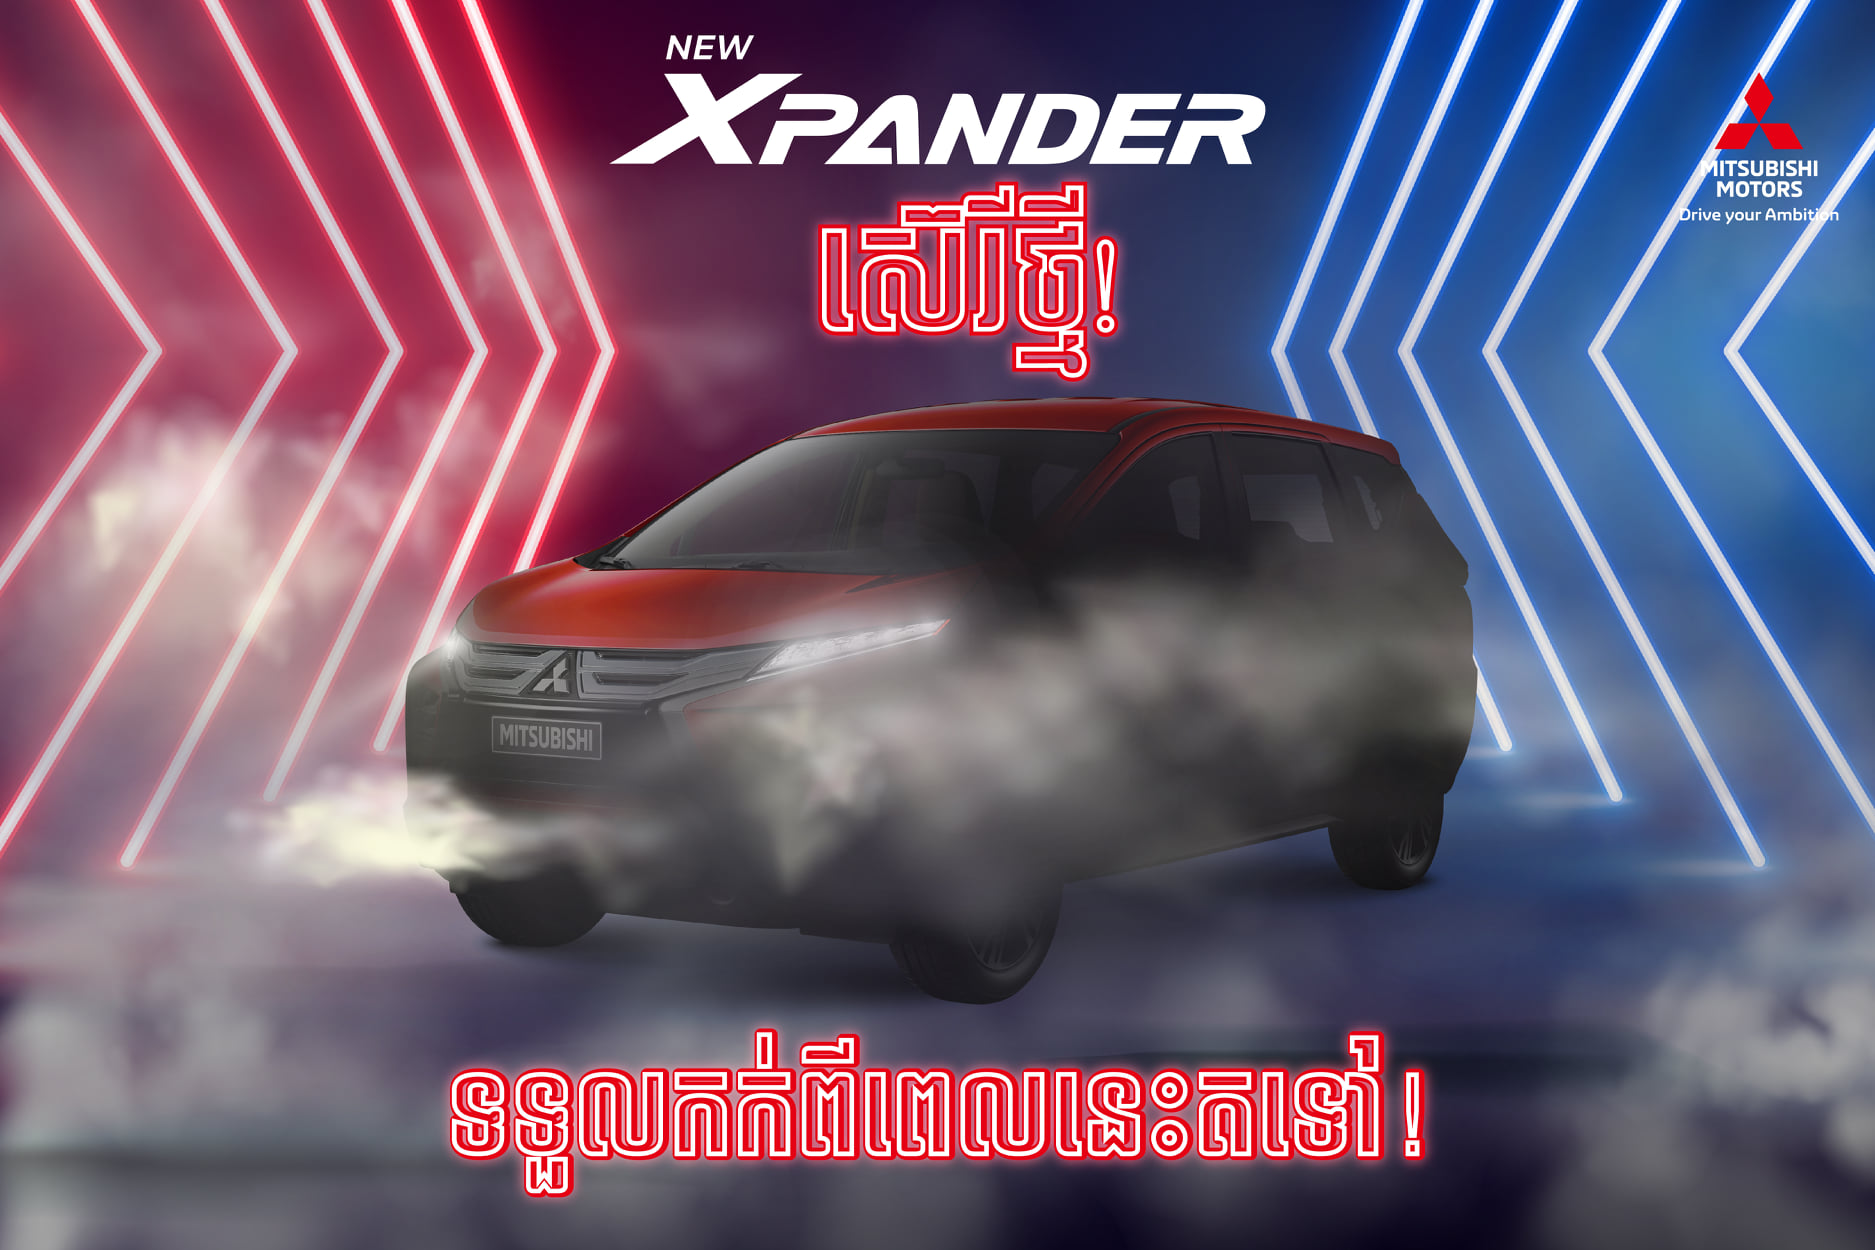 New model of Xpander is now opened for Pre-order